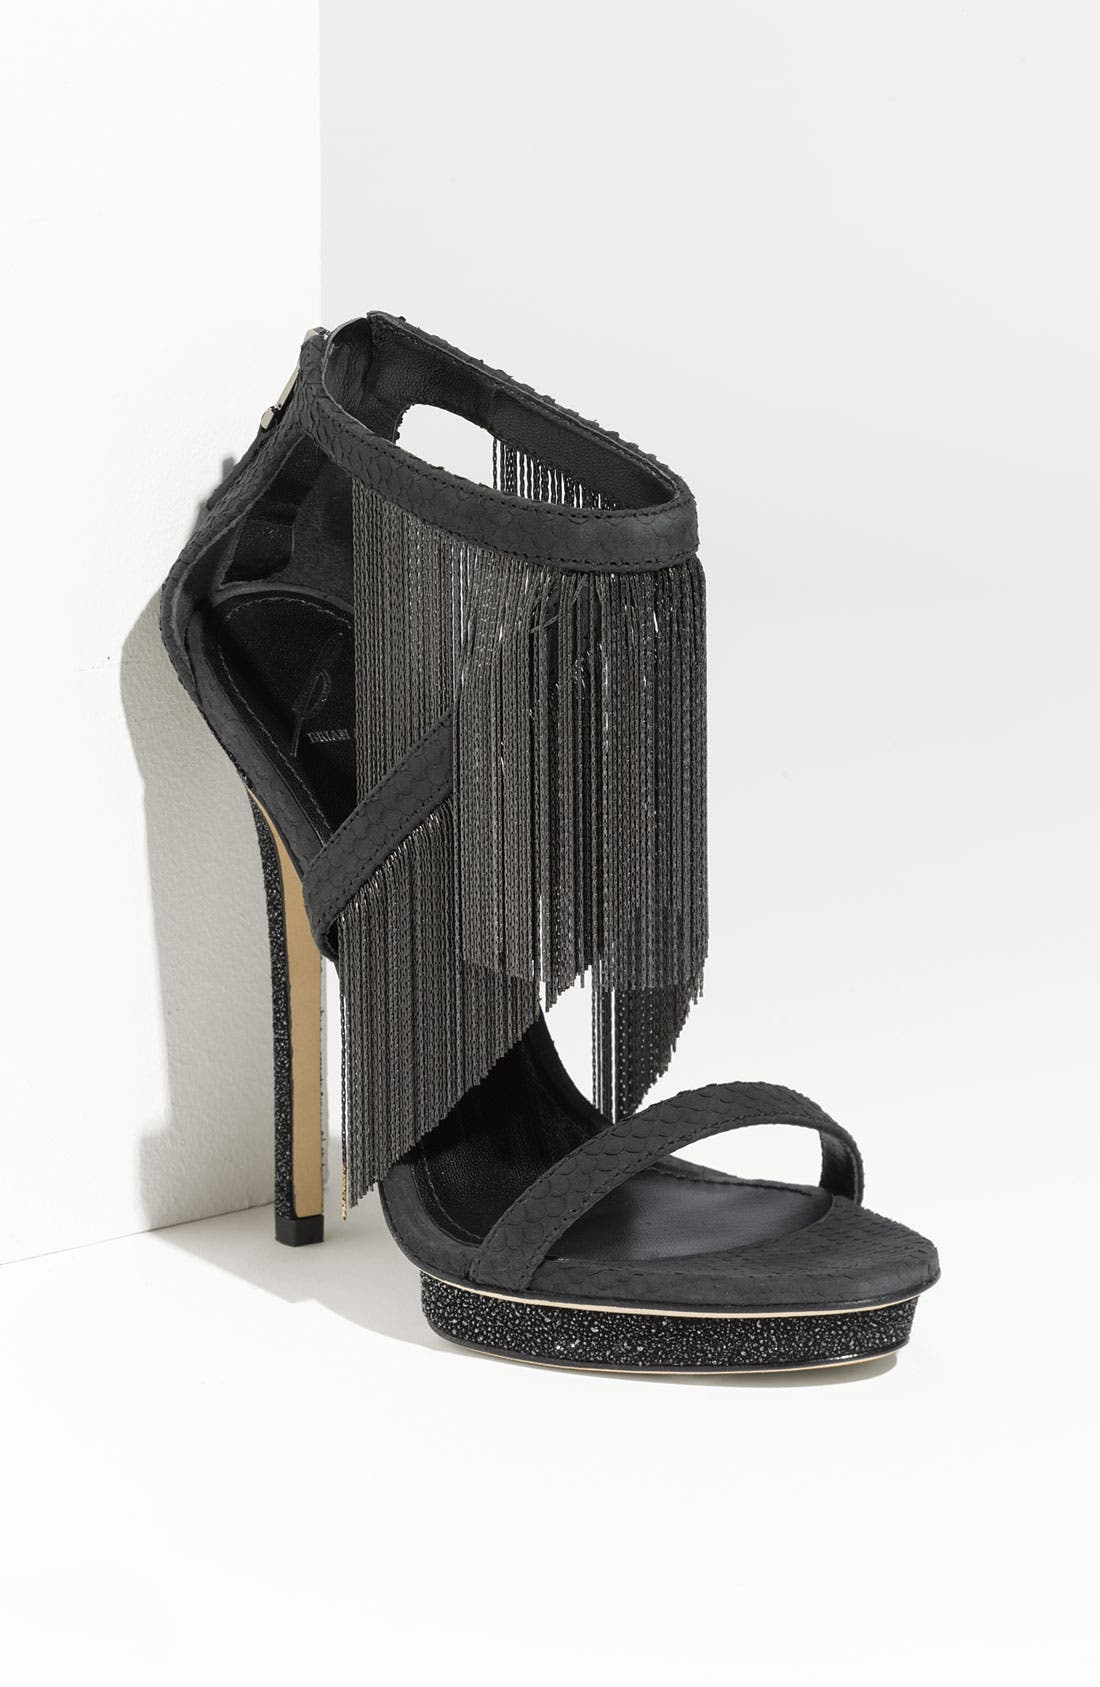 Main Image - B Brian Atwood 'Cassiane' Sandal